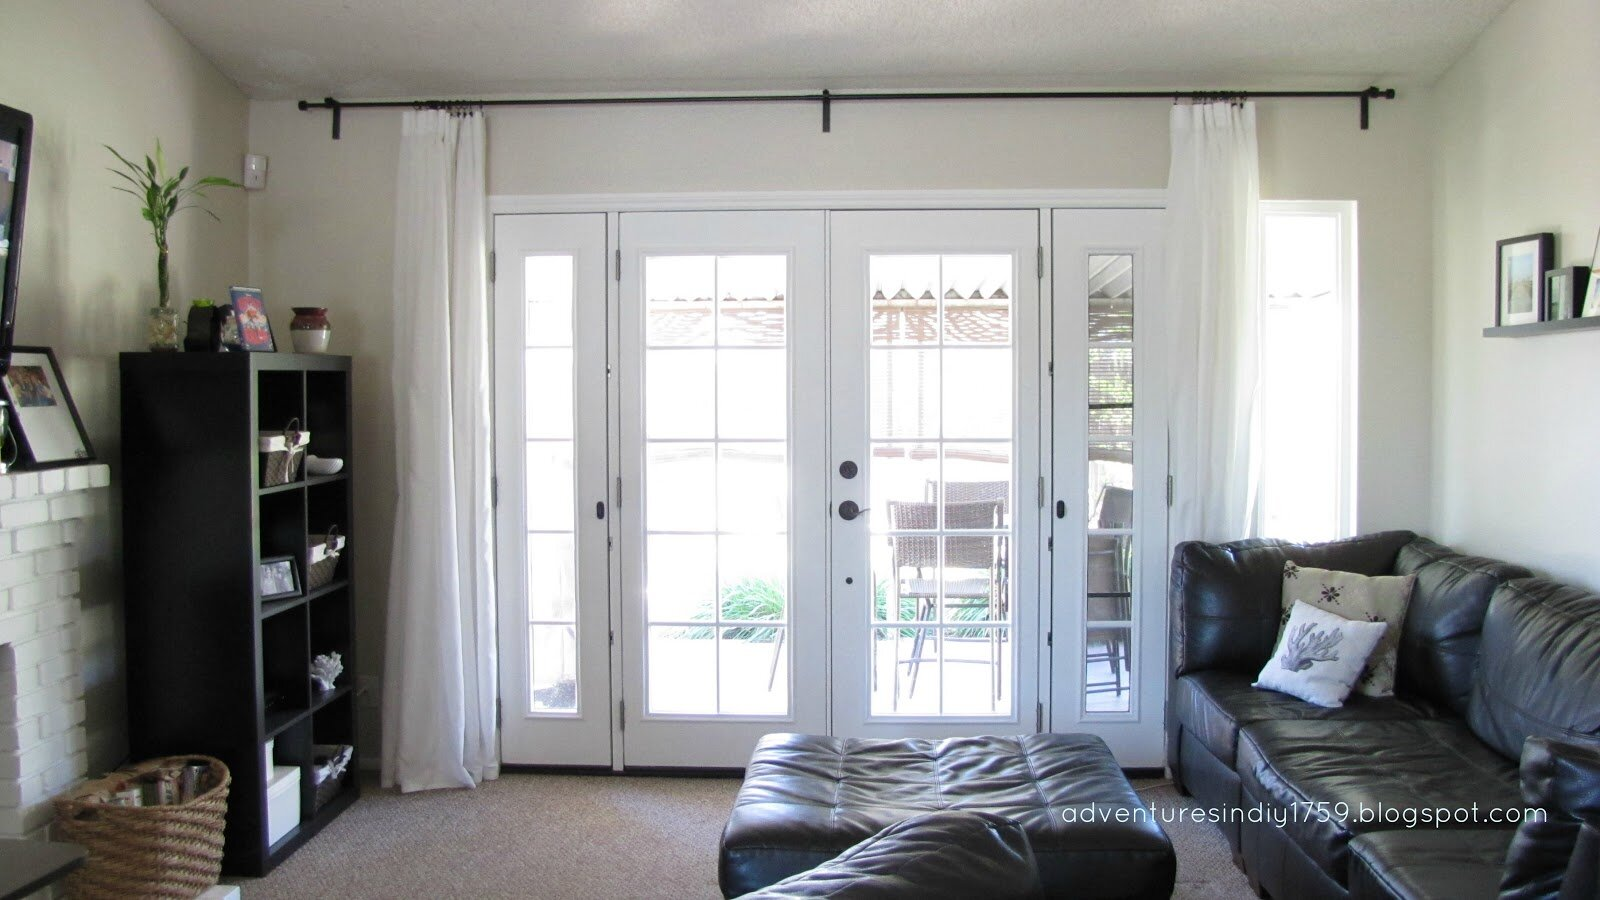 Window Valances for Bedroom | Living Room Valances | Dining Room Curtains and Valances